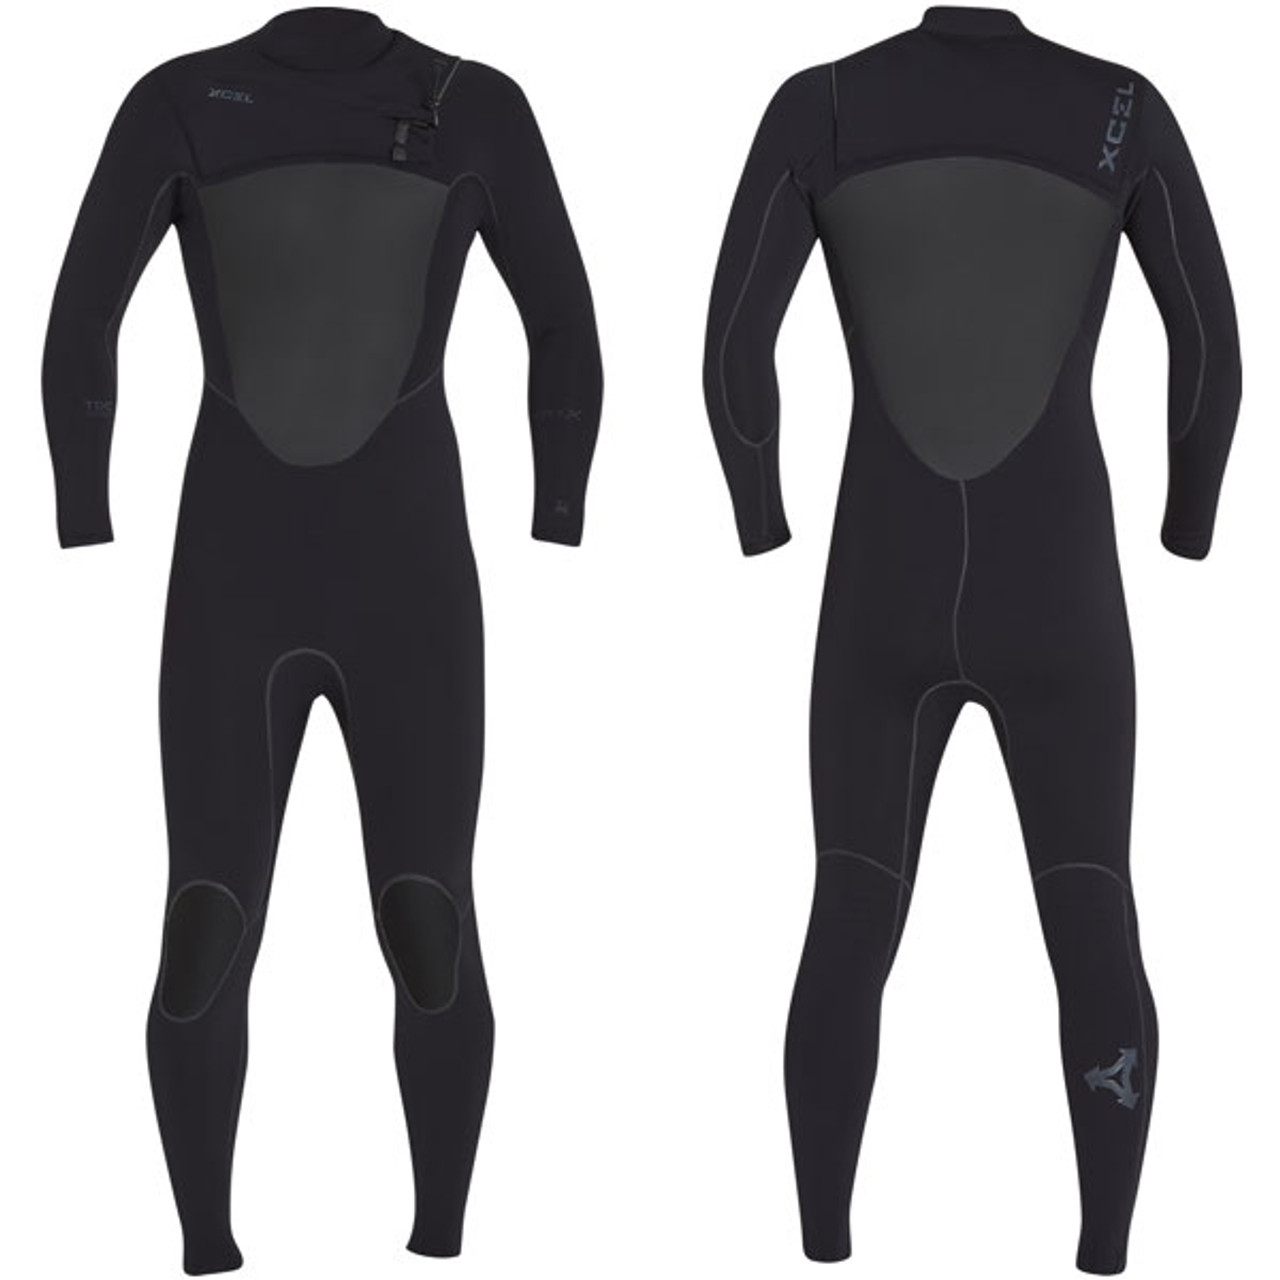 10a790c246 Drylock X Power Seam Steamer 3:2mm | Chest Zip | Black | Xcel Wetsuits |  The Best Surfing Wetsuit